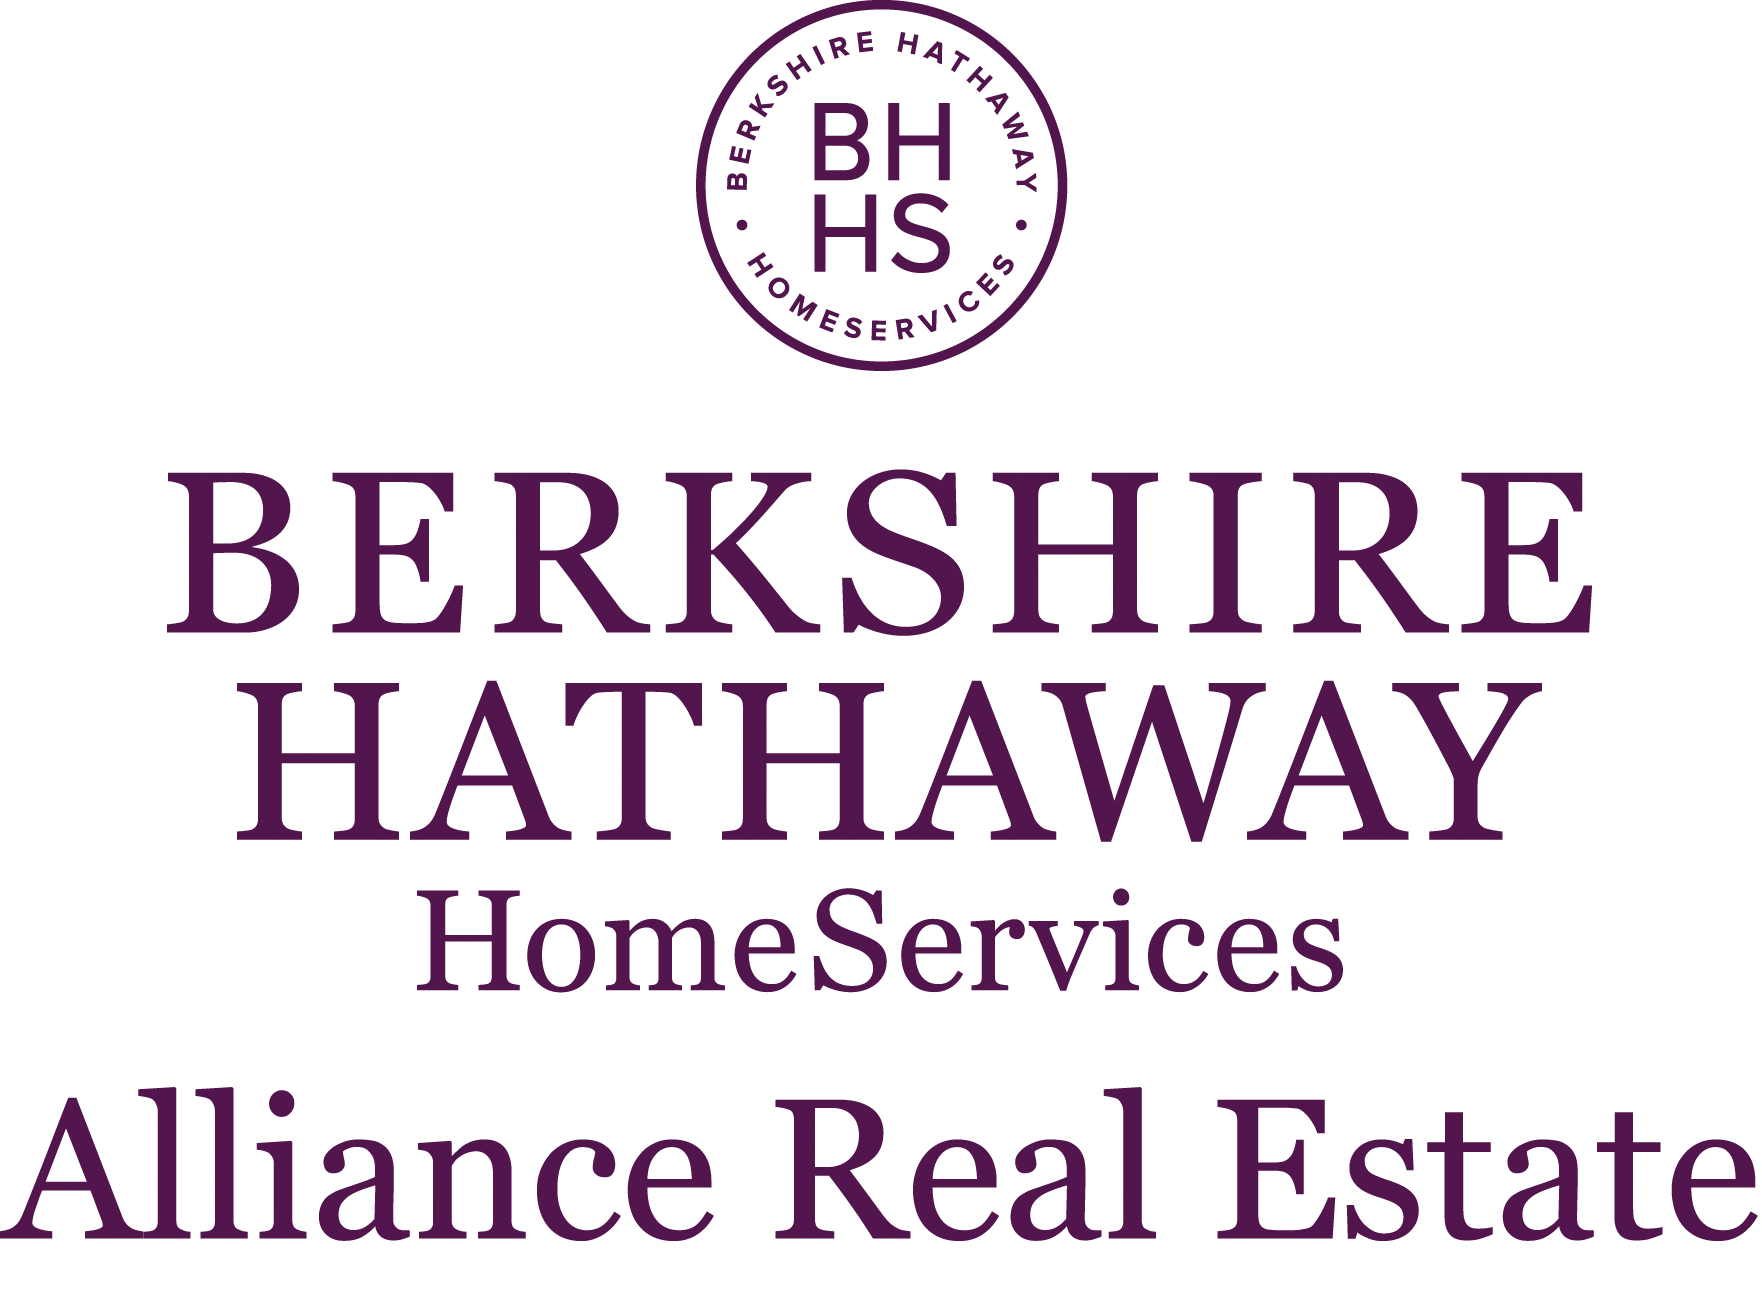 Berkshire Hathaway Home Services St. Louis